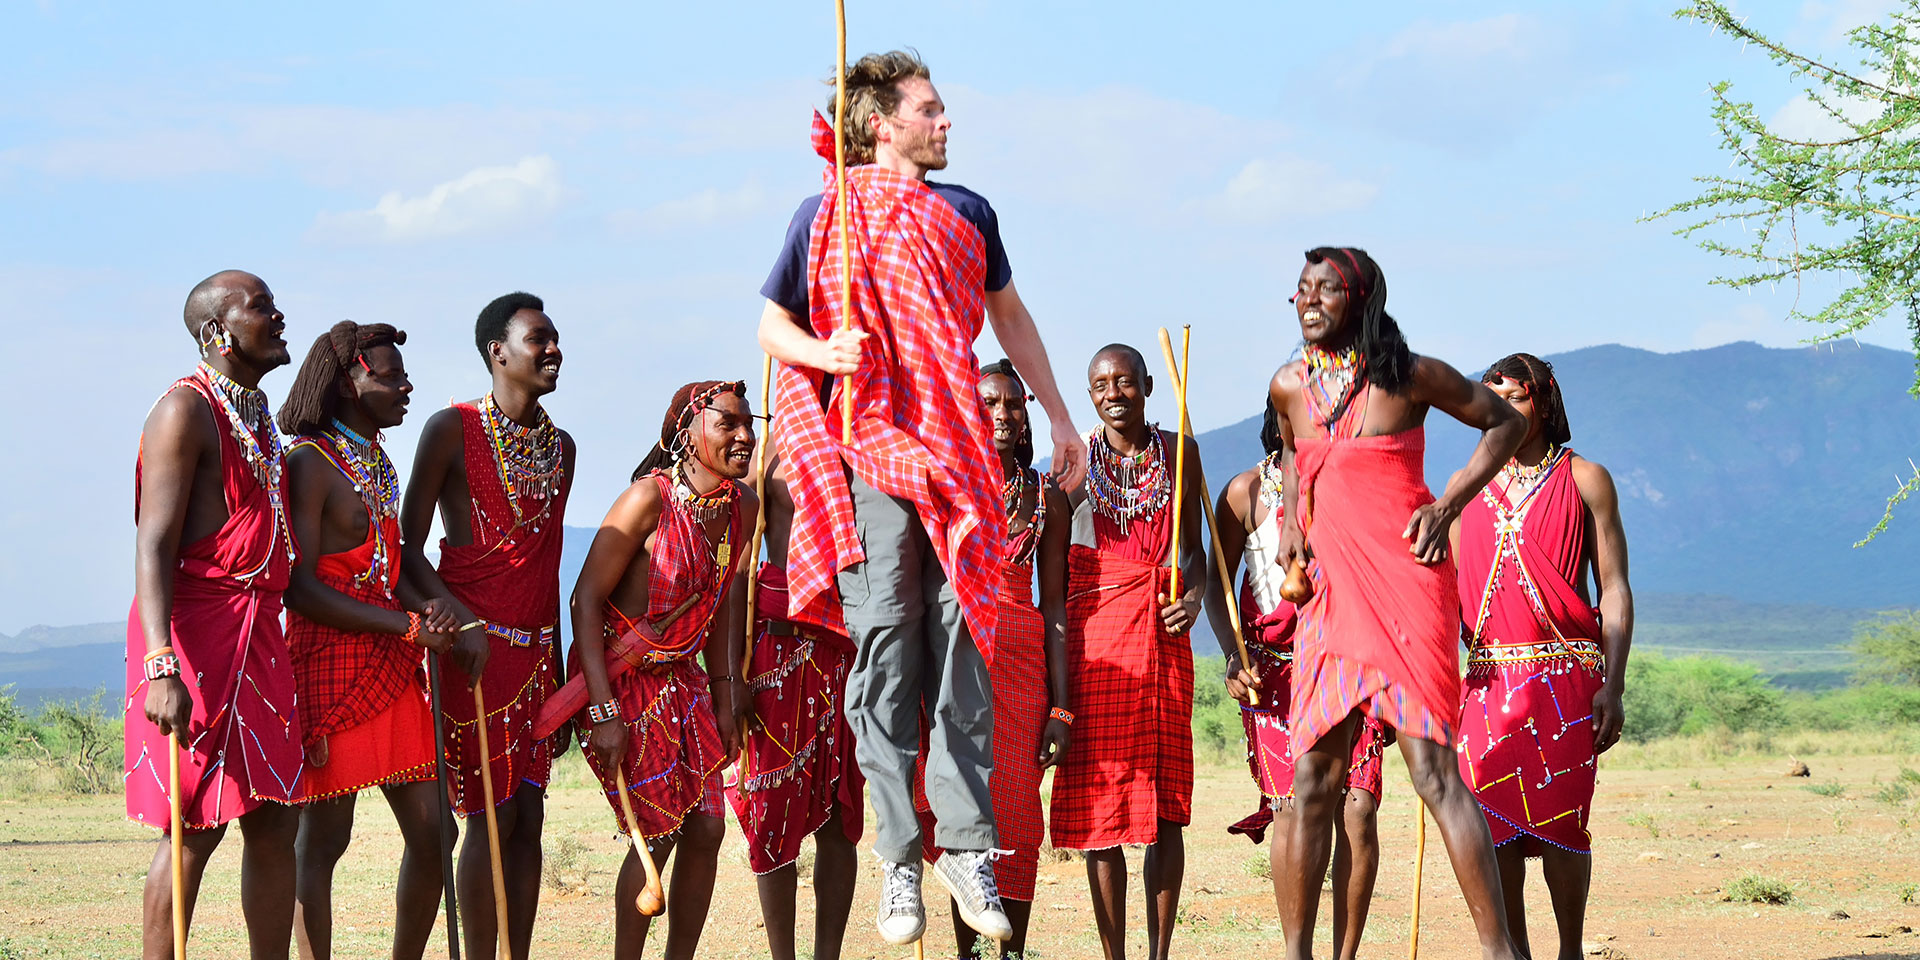 Tourist Among Locals in Kenya 252.98 Kb